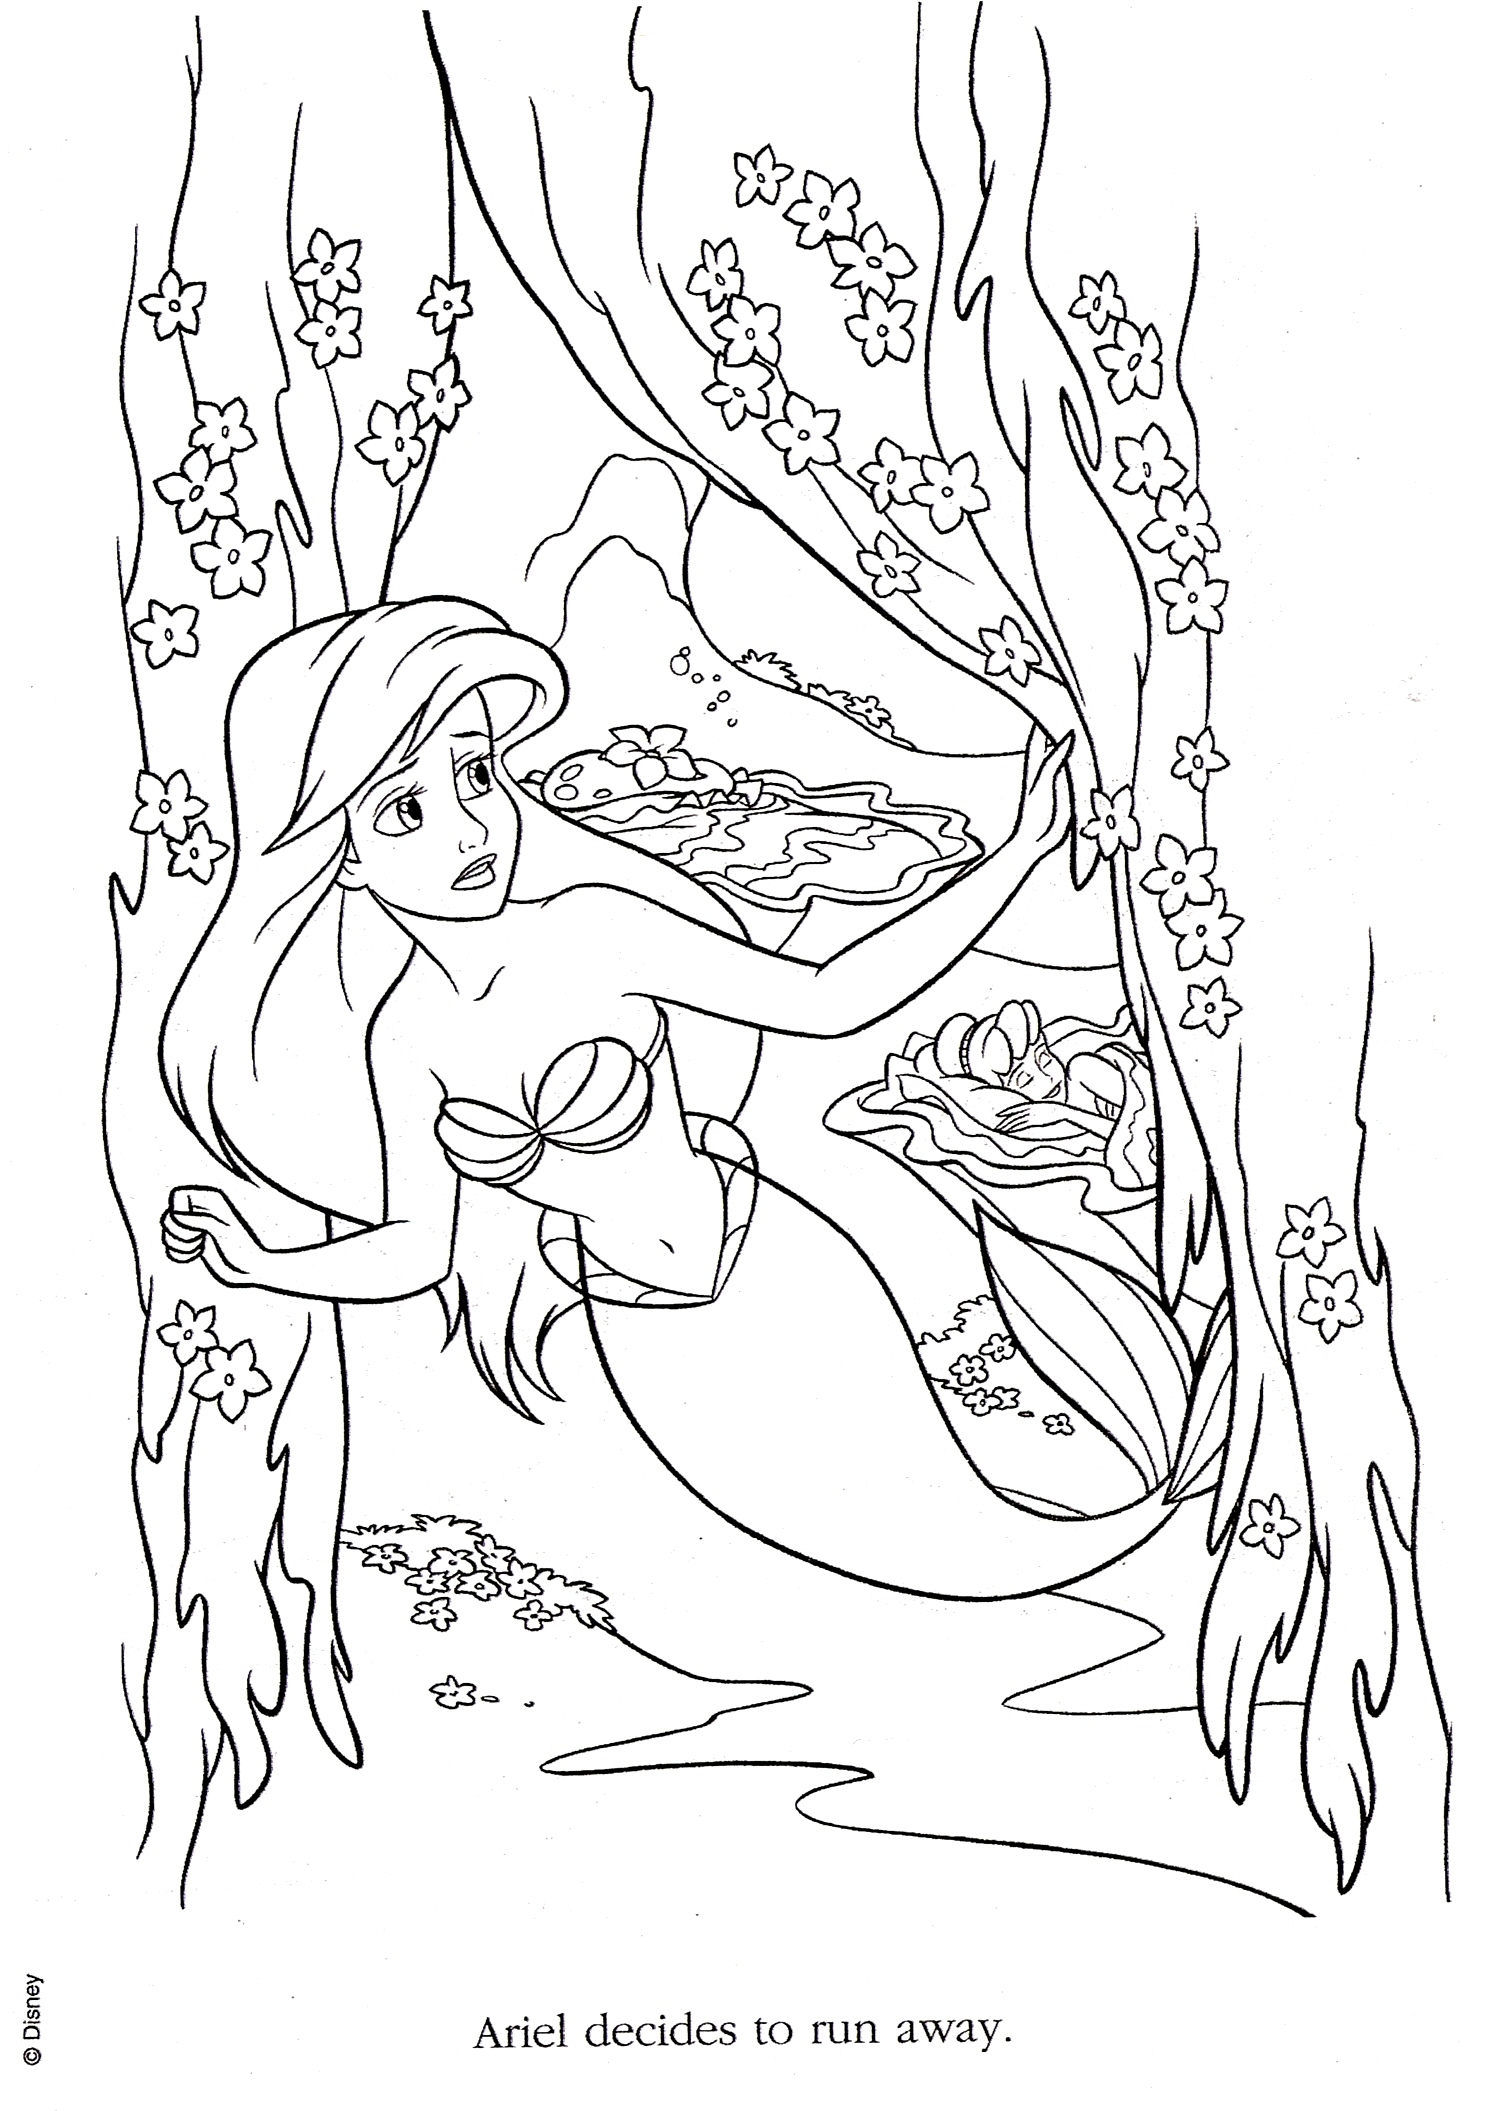 Kids Under 7 Coloring Pages